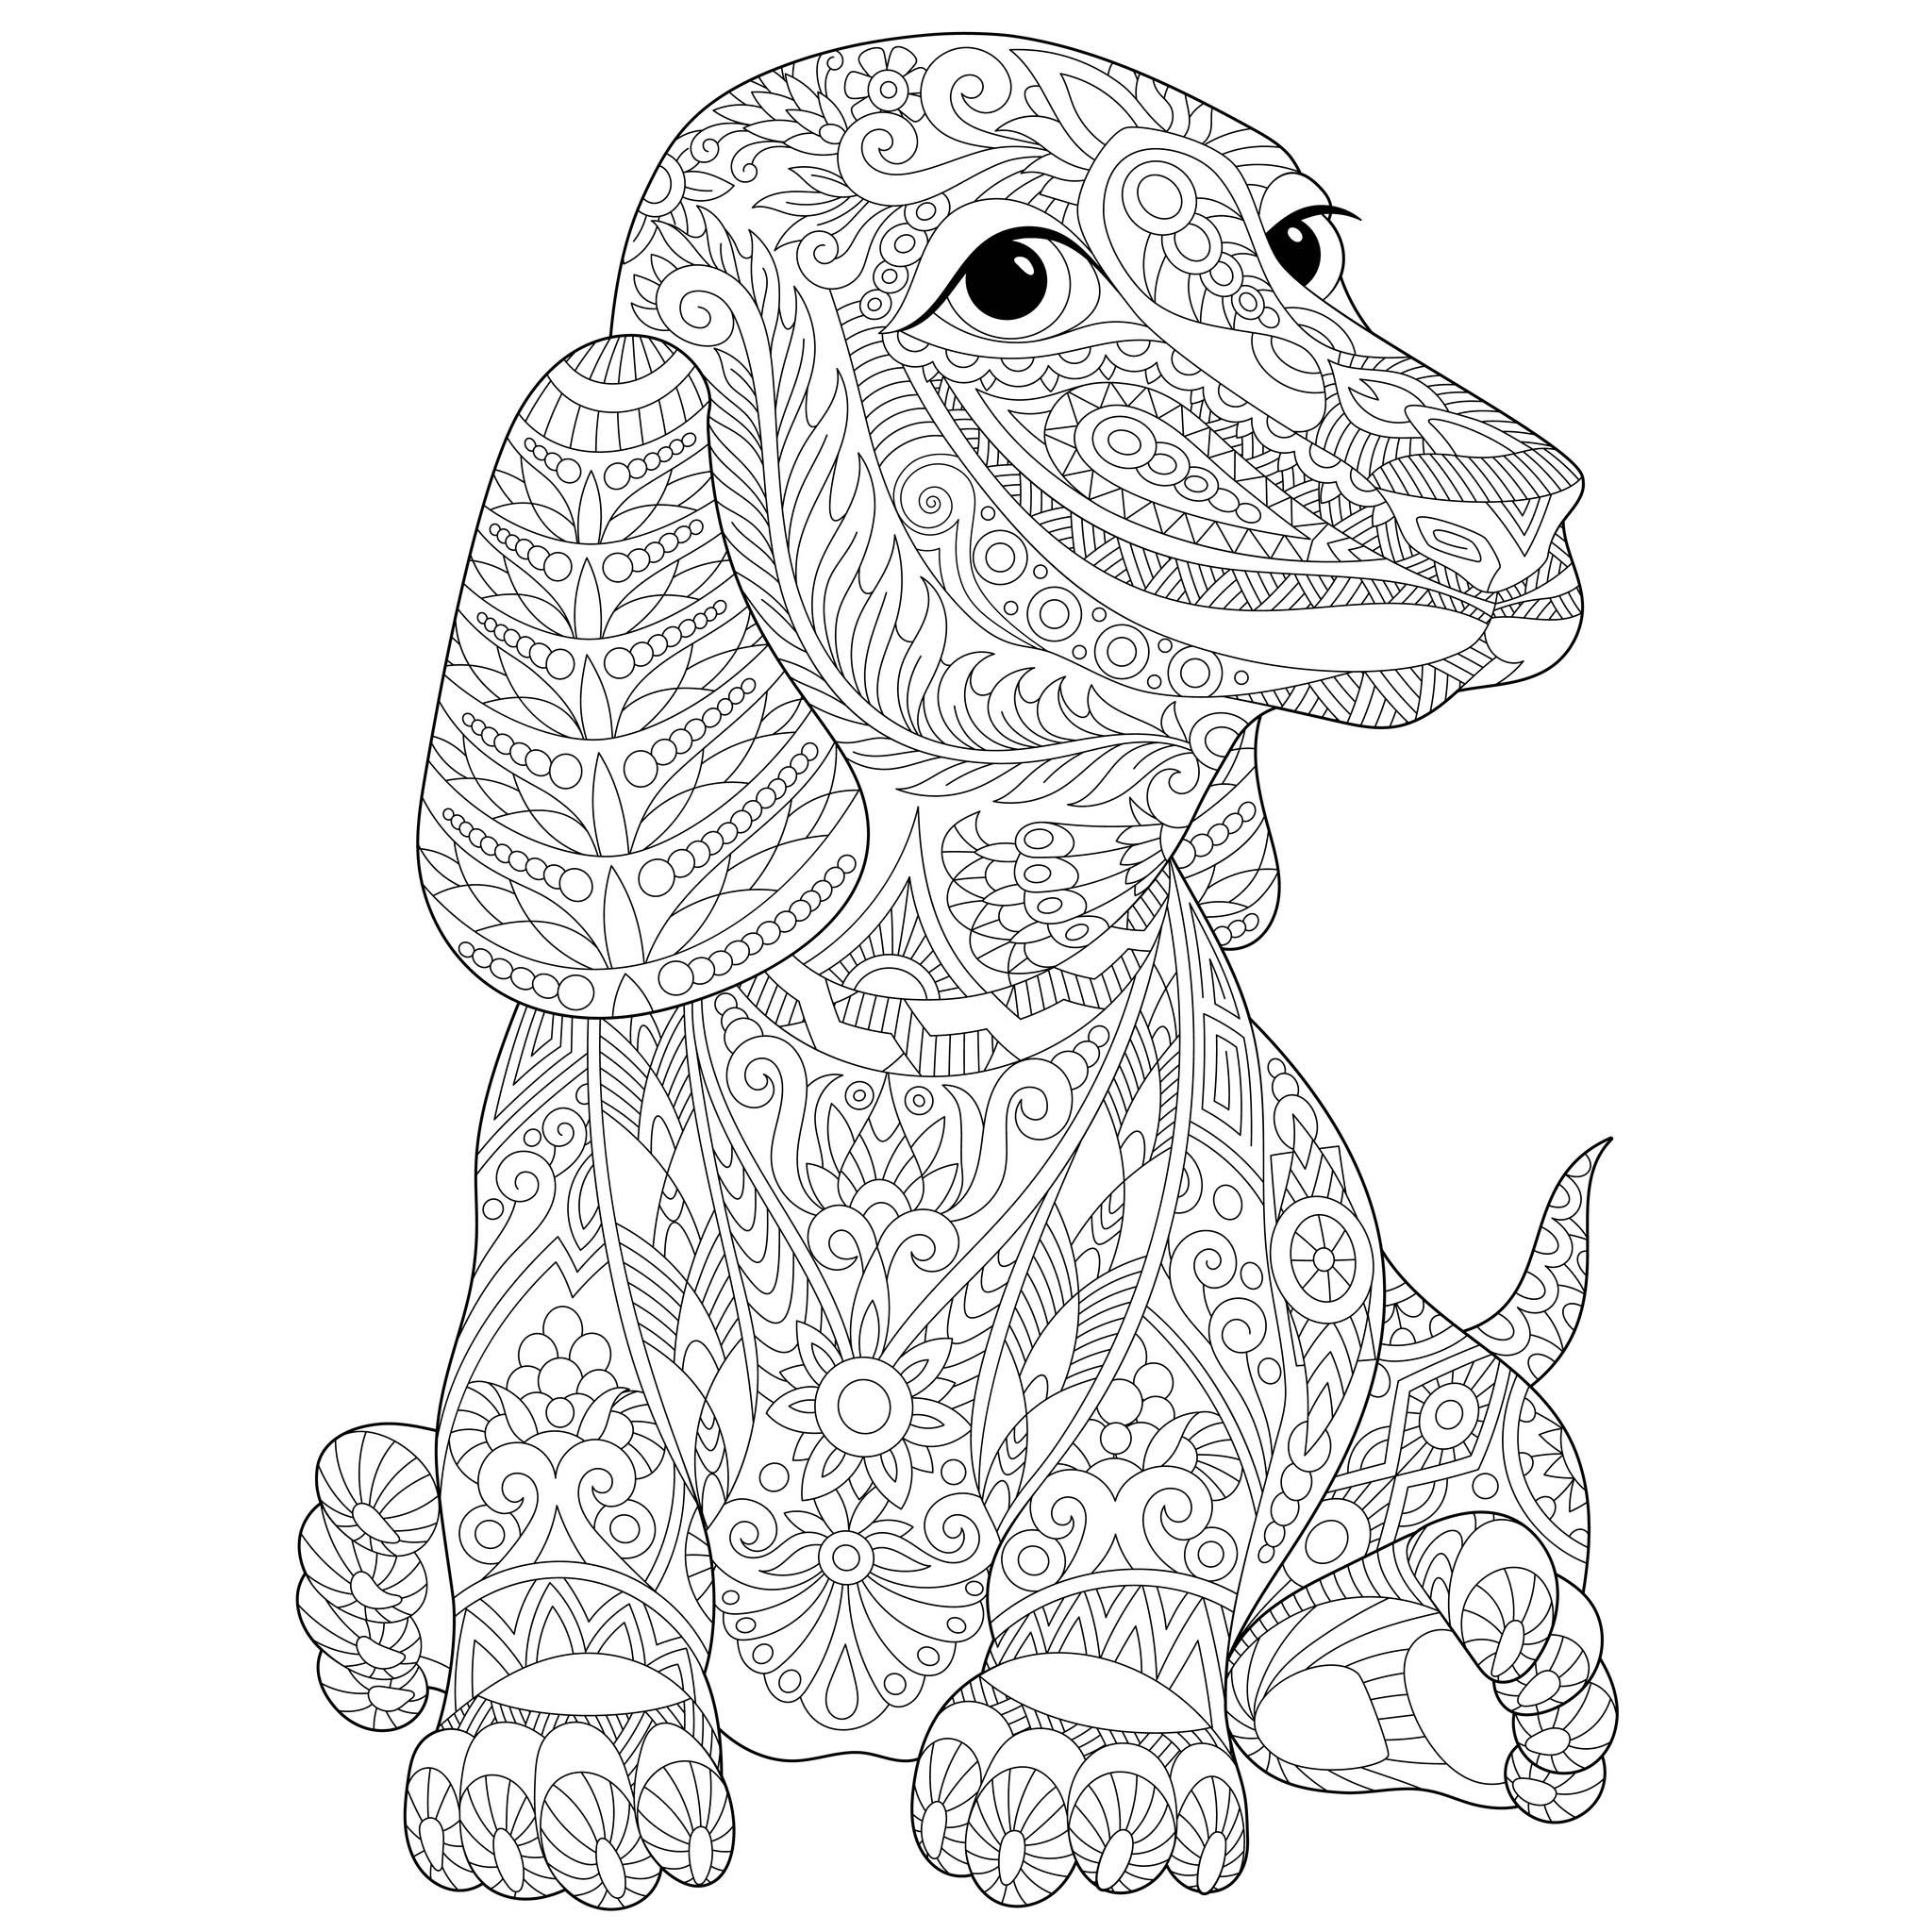 kids dog coloring pages puppy coloring pages best coloring pages for kids coloring dog pages kids